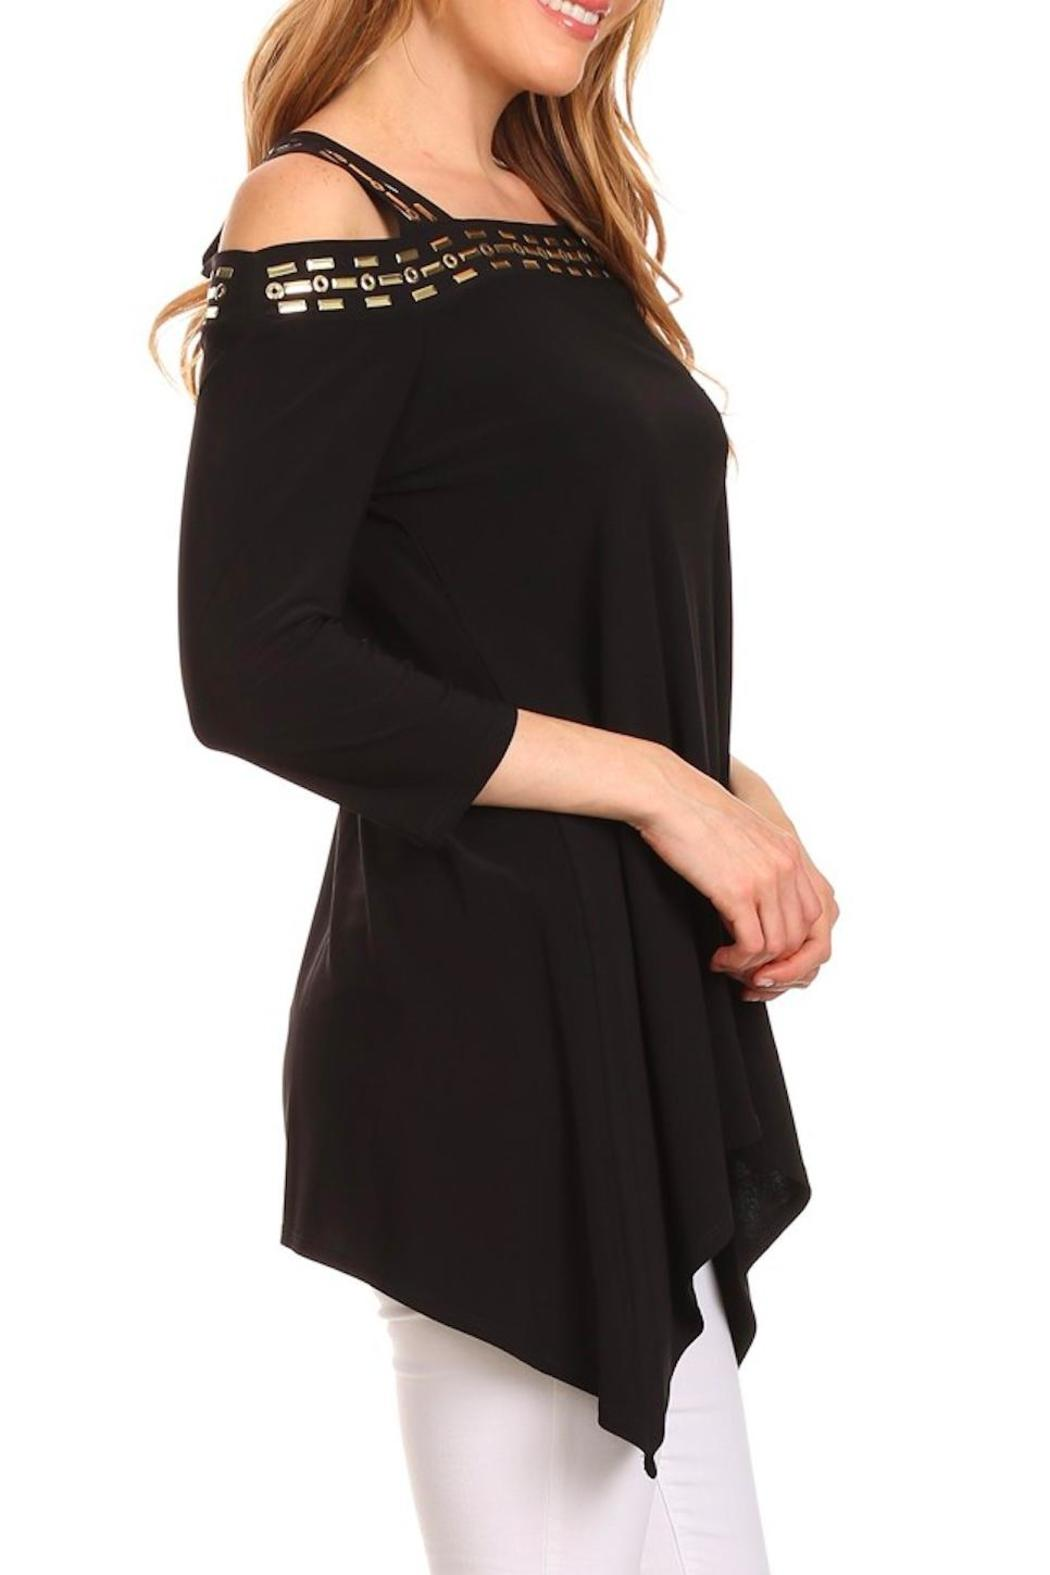 Karen T Designs 3/4 Sleeve Tunic - Back Cropped Image